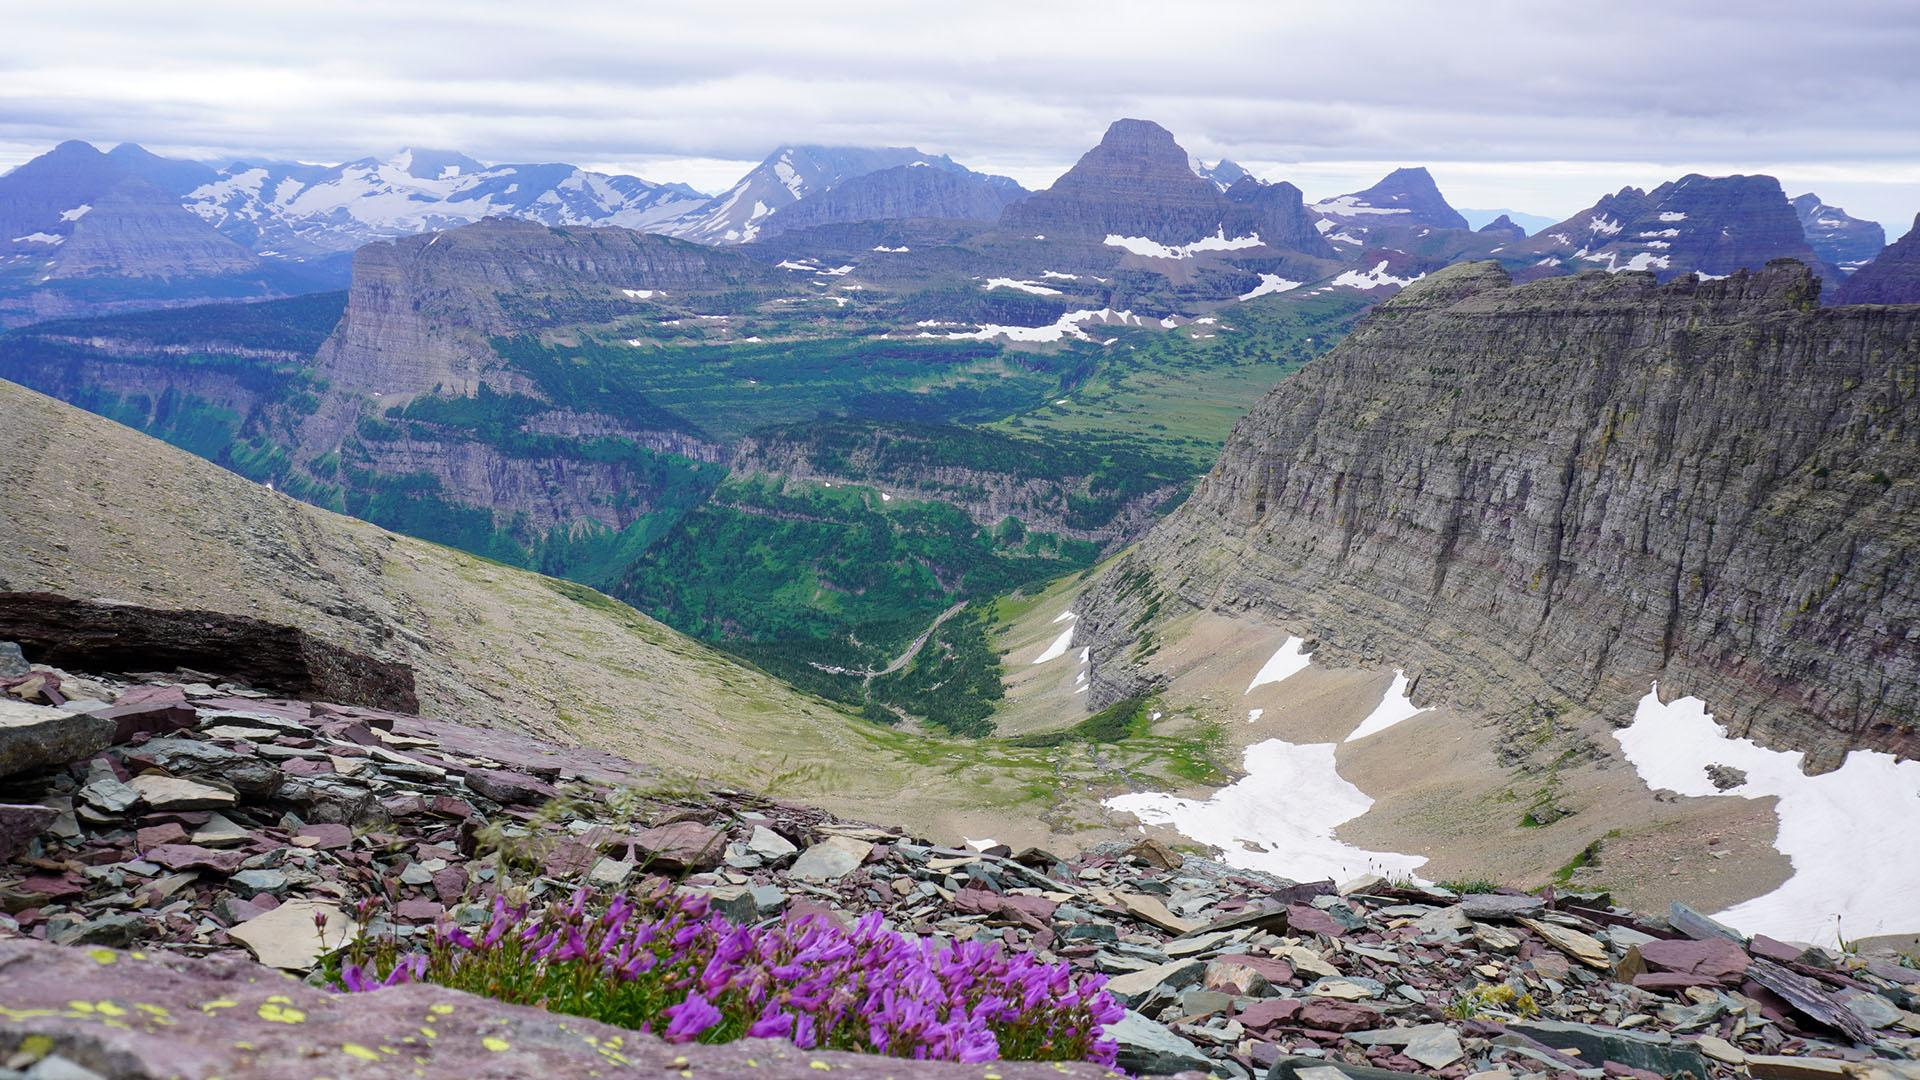 Glacier National Park offers stunning views in every direction